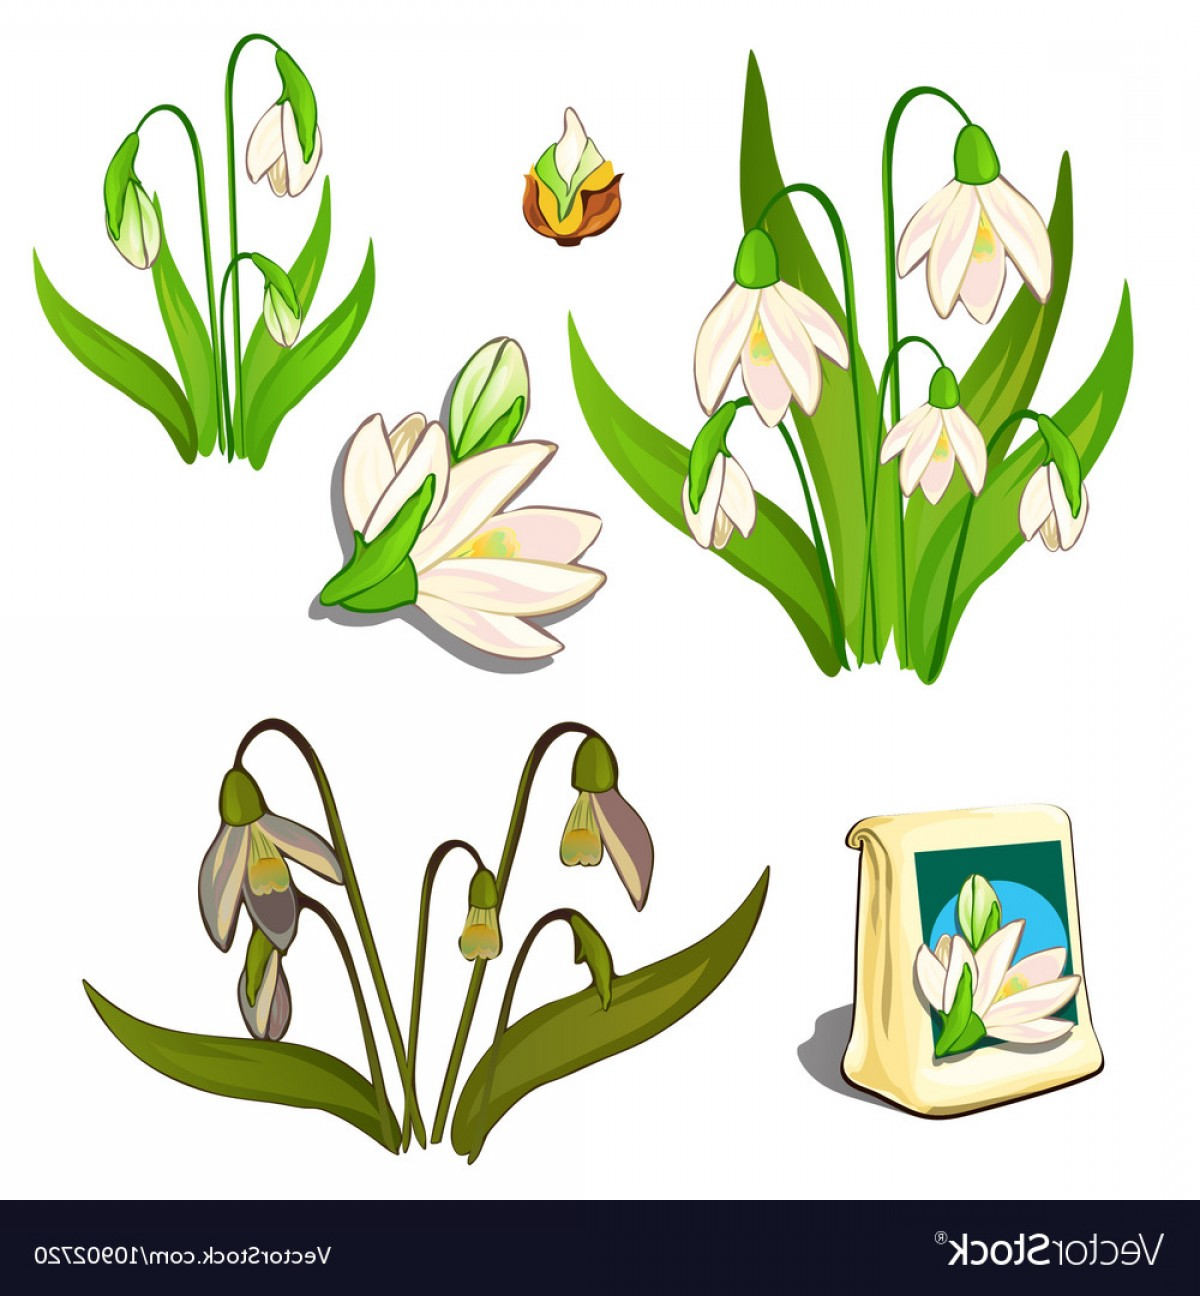 Seed Flower Vectors: Seeds Stages Of Growth And Wilting White Flowers Vector